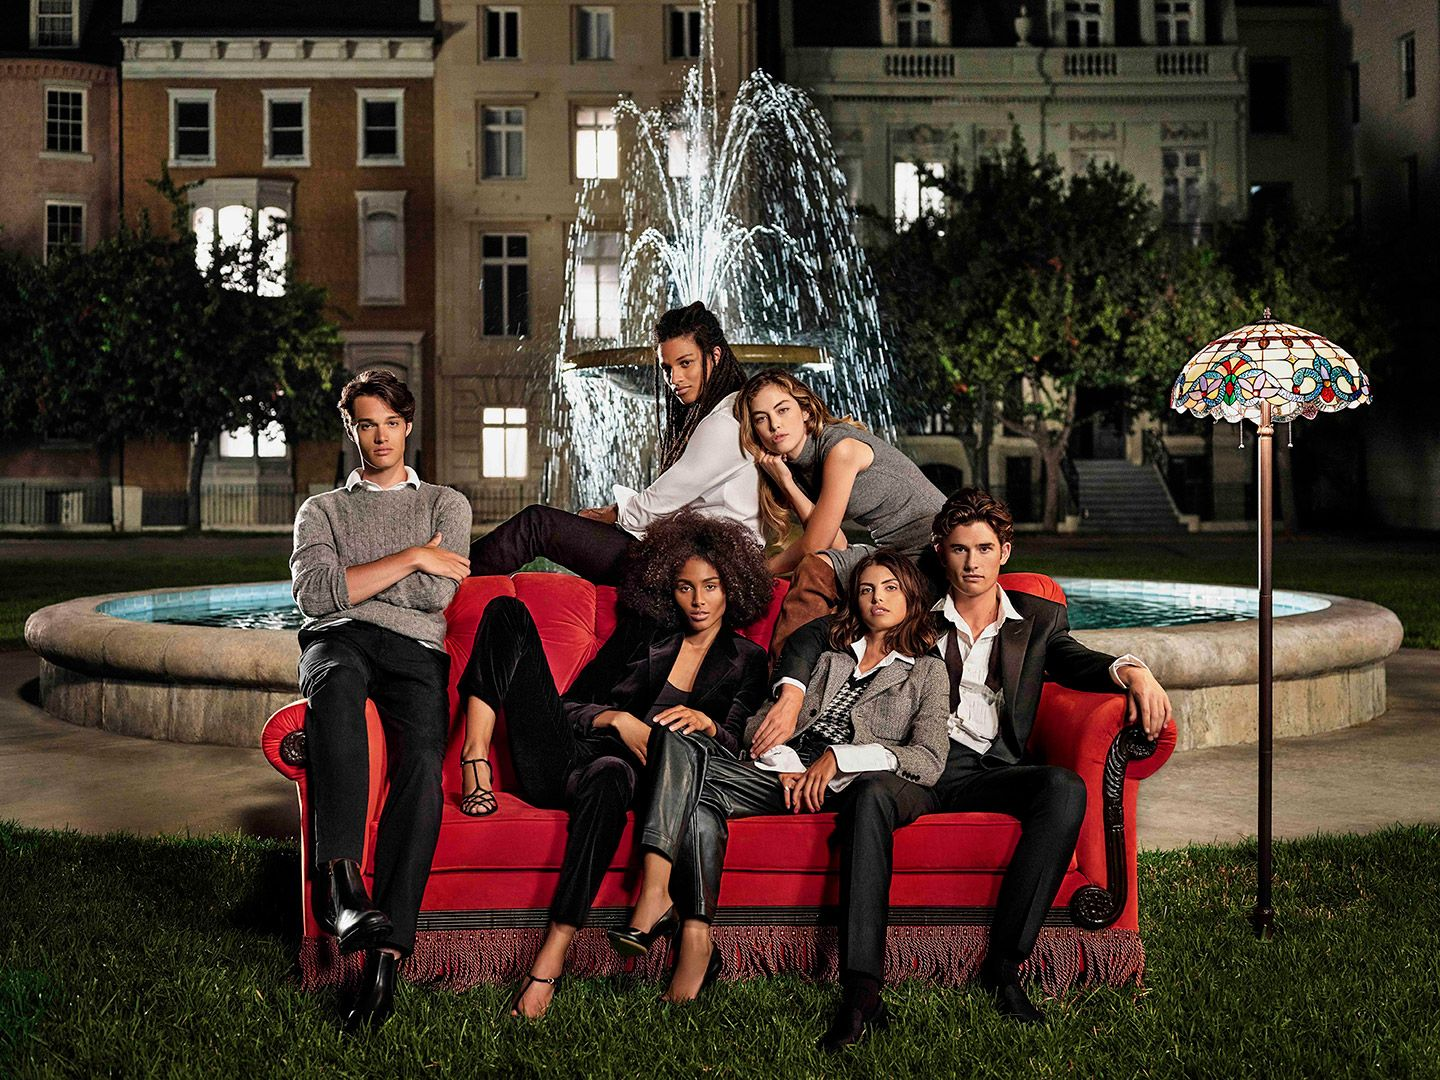 Models wearing Ralph Lauren shot by Maxyme G. Delisle for Ralph Lauren photoshoot inspired by the sitcom FRIENDS